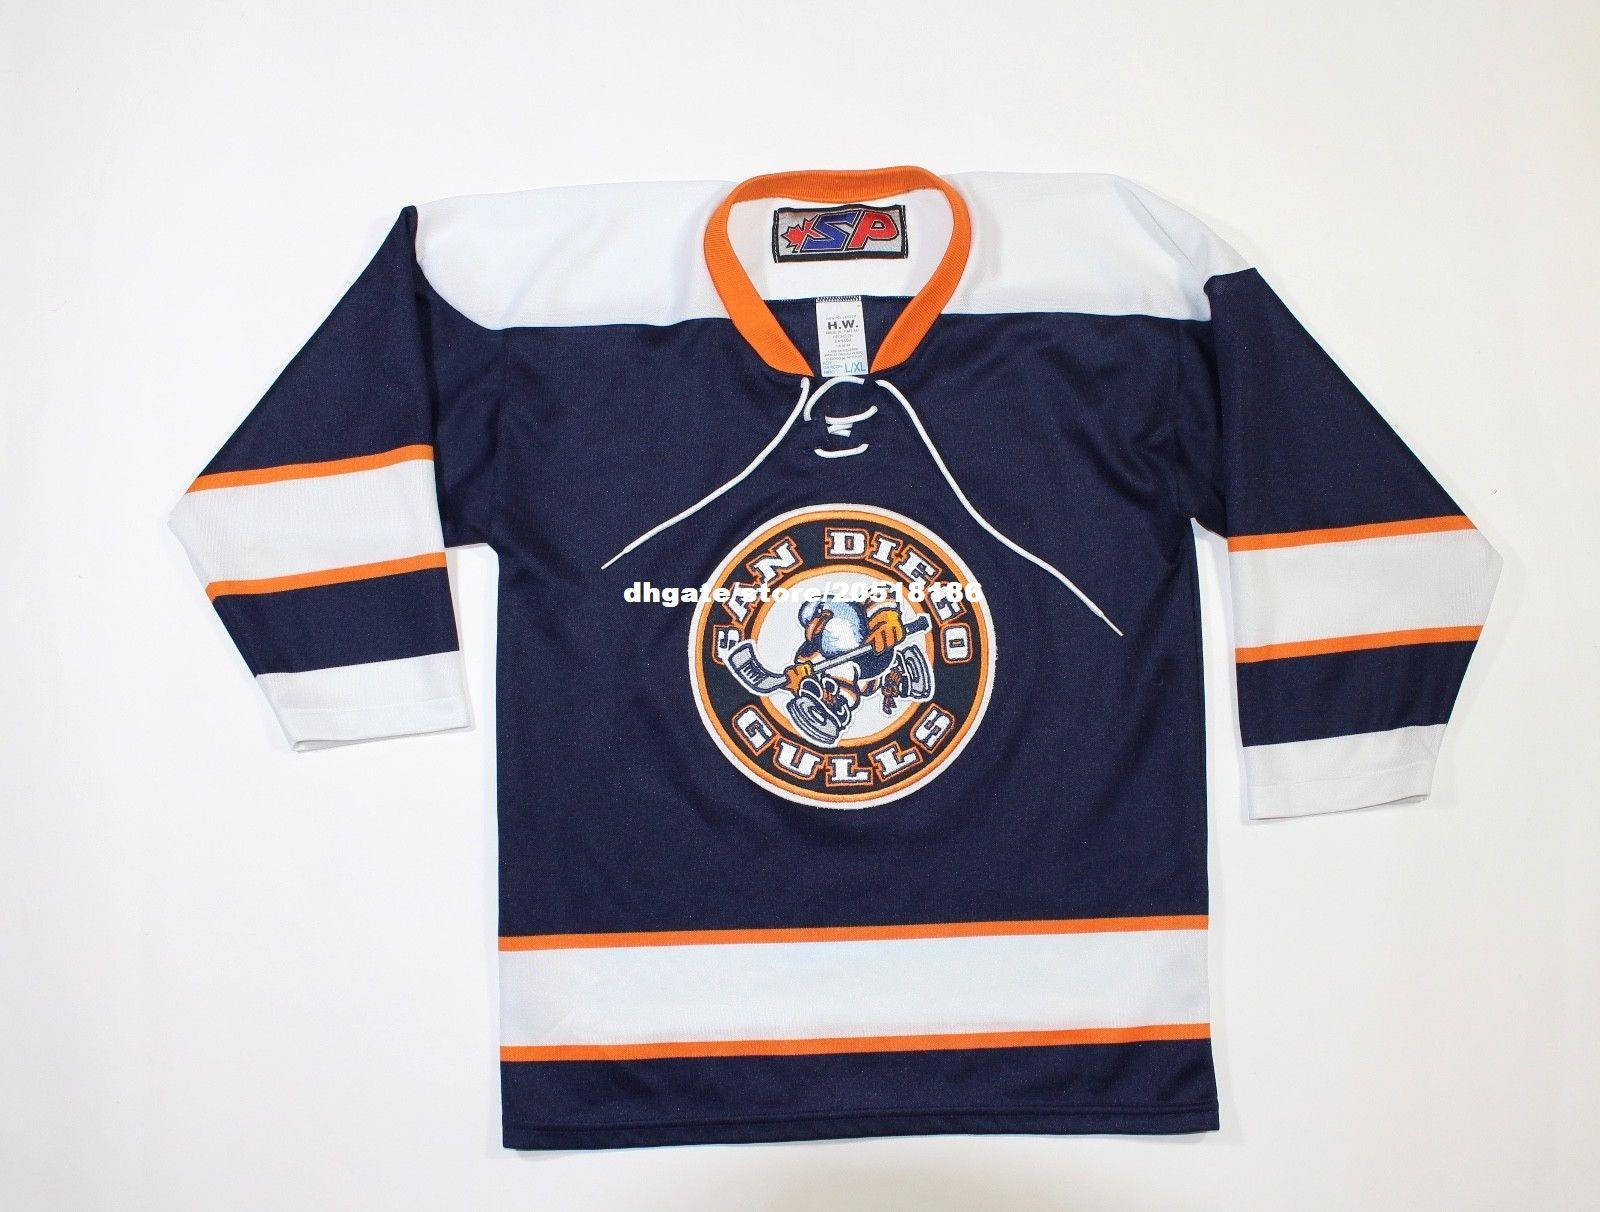 cheap stitched jerseys